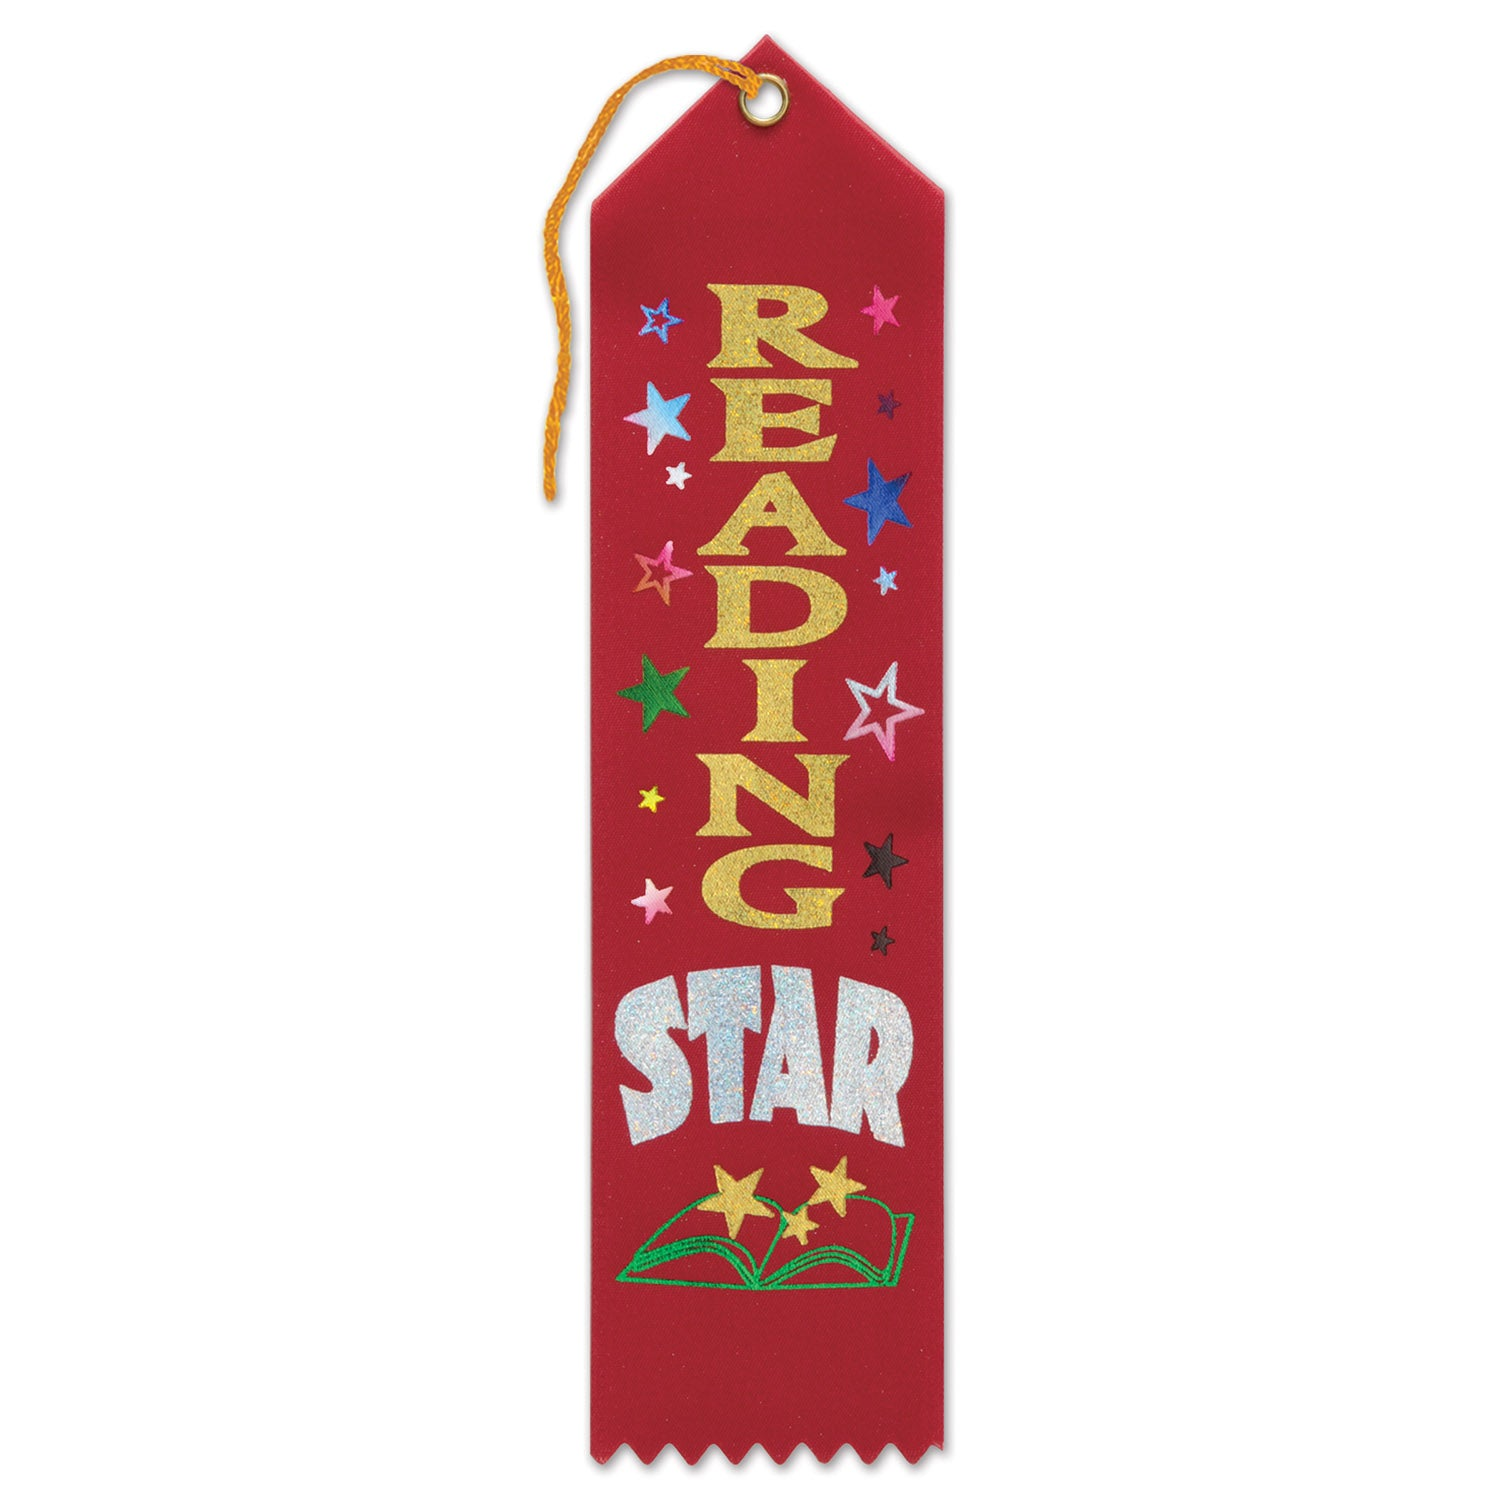 Reading Star Award Ribbon by Beistle - School Awards and Supplies Decorations